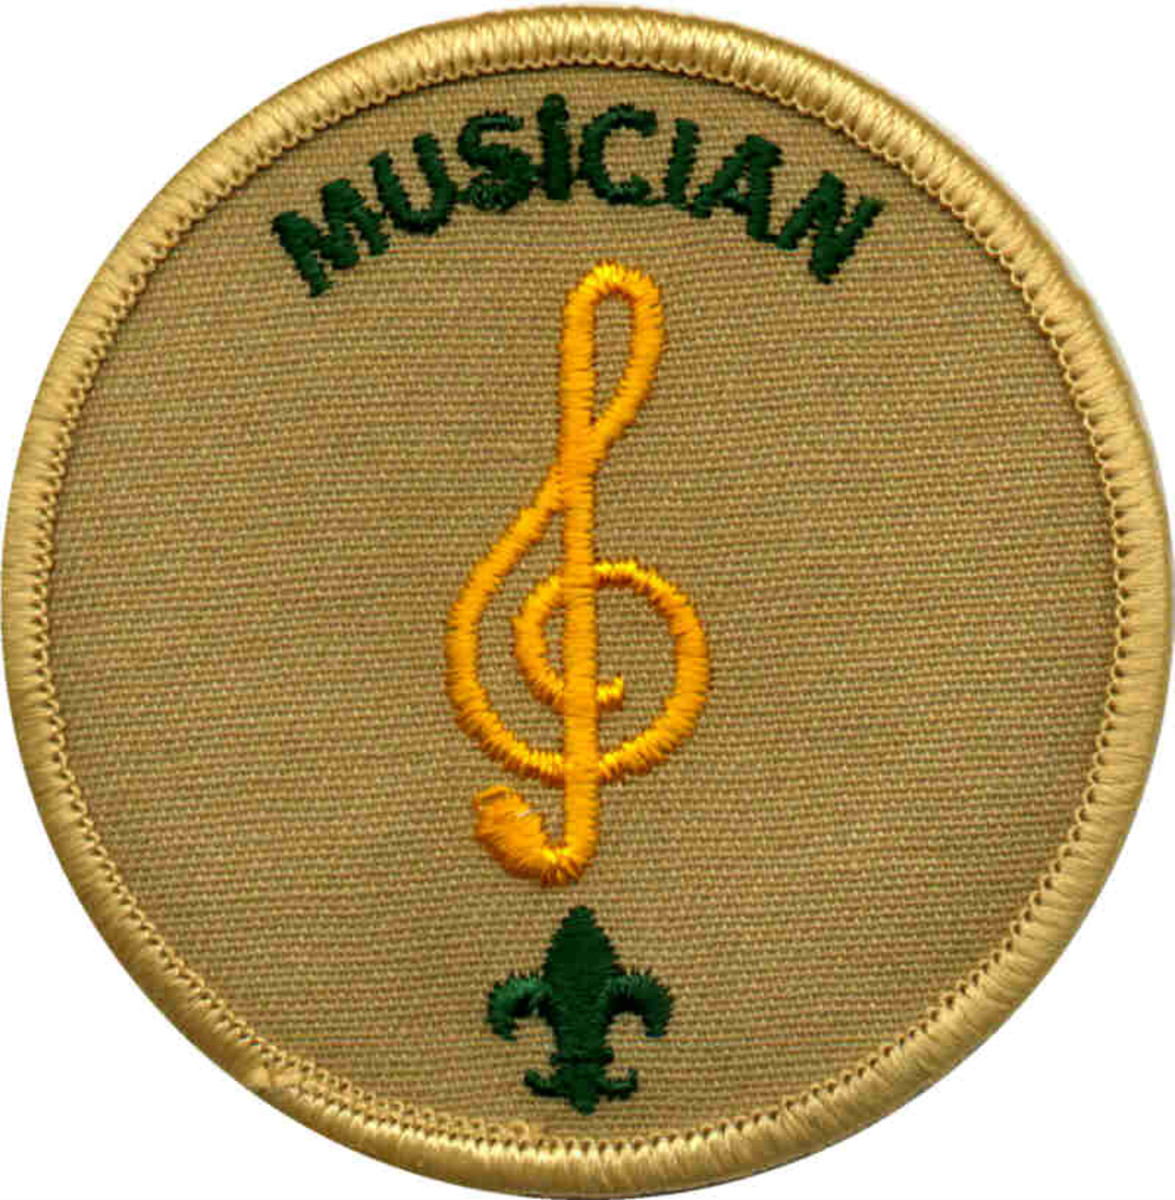 The Musician merit badge.  Surely a Scout keeps an honest tempo?